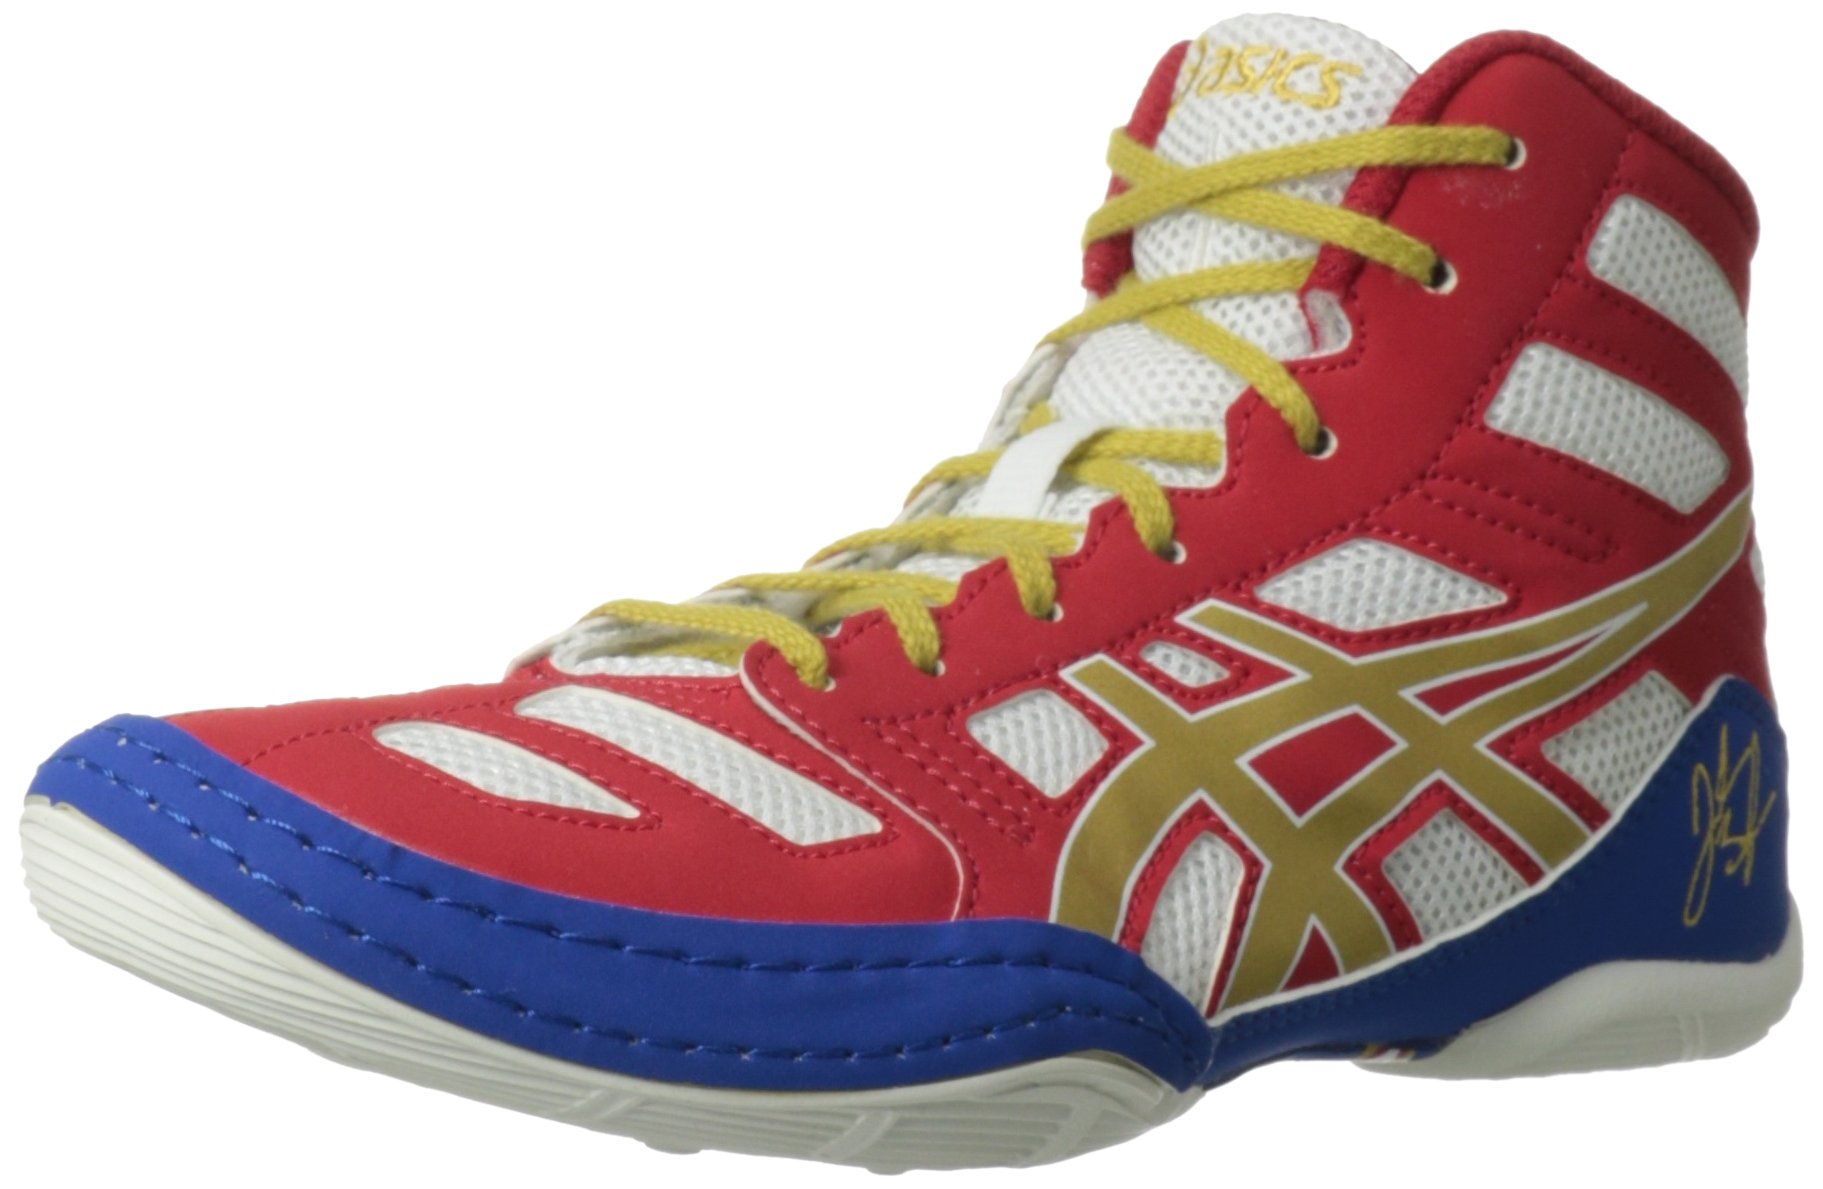 ASICS JB Elite GS (Youth) - True Red/Olympic Gold/White-5.5 M Yth by ASICS